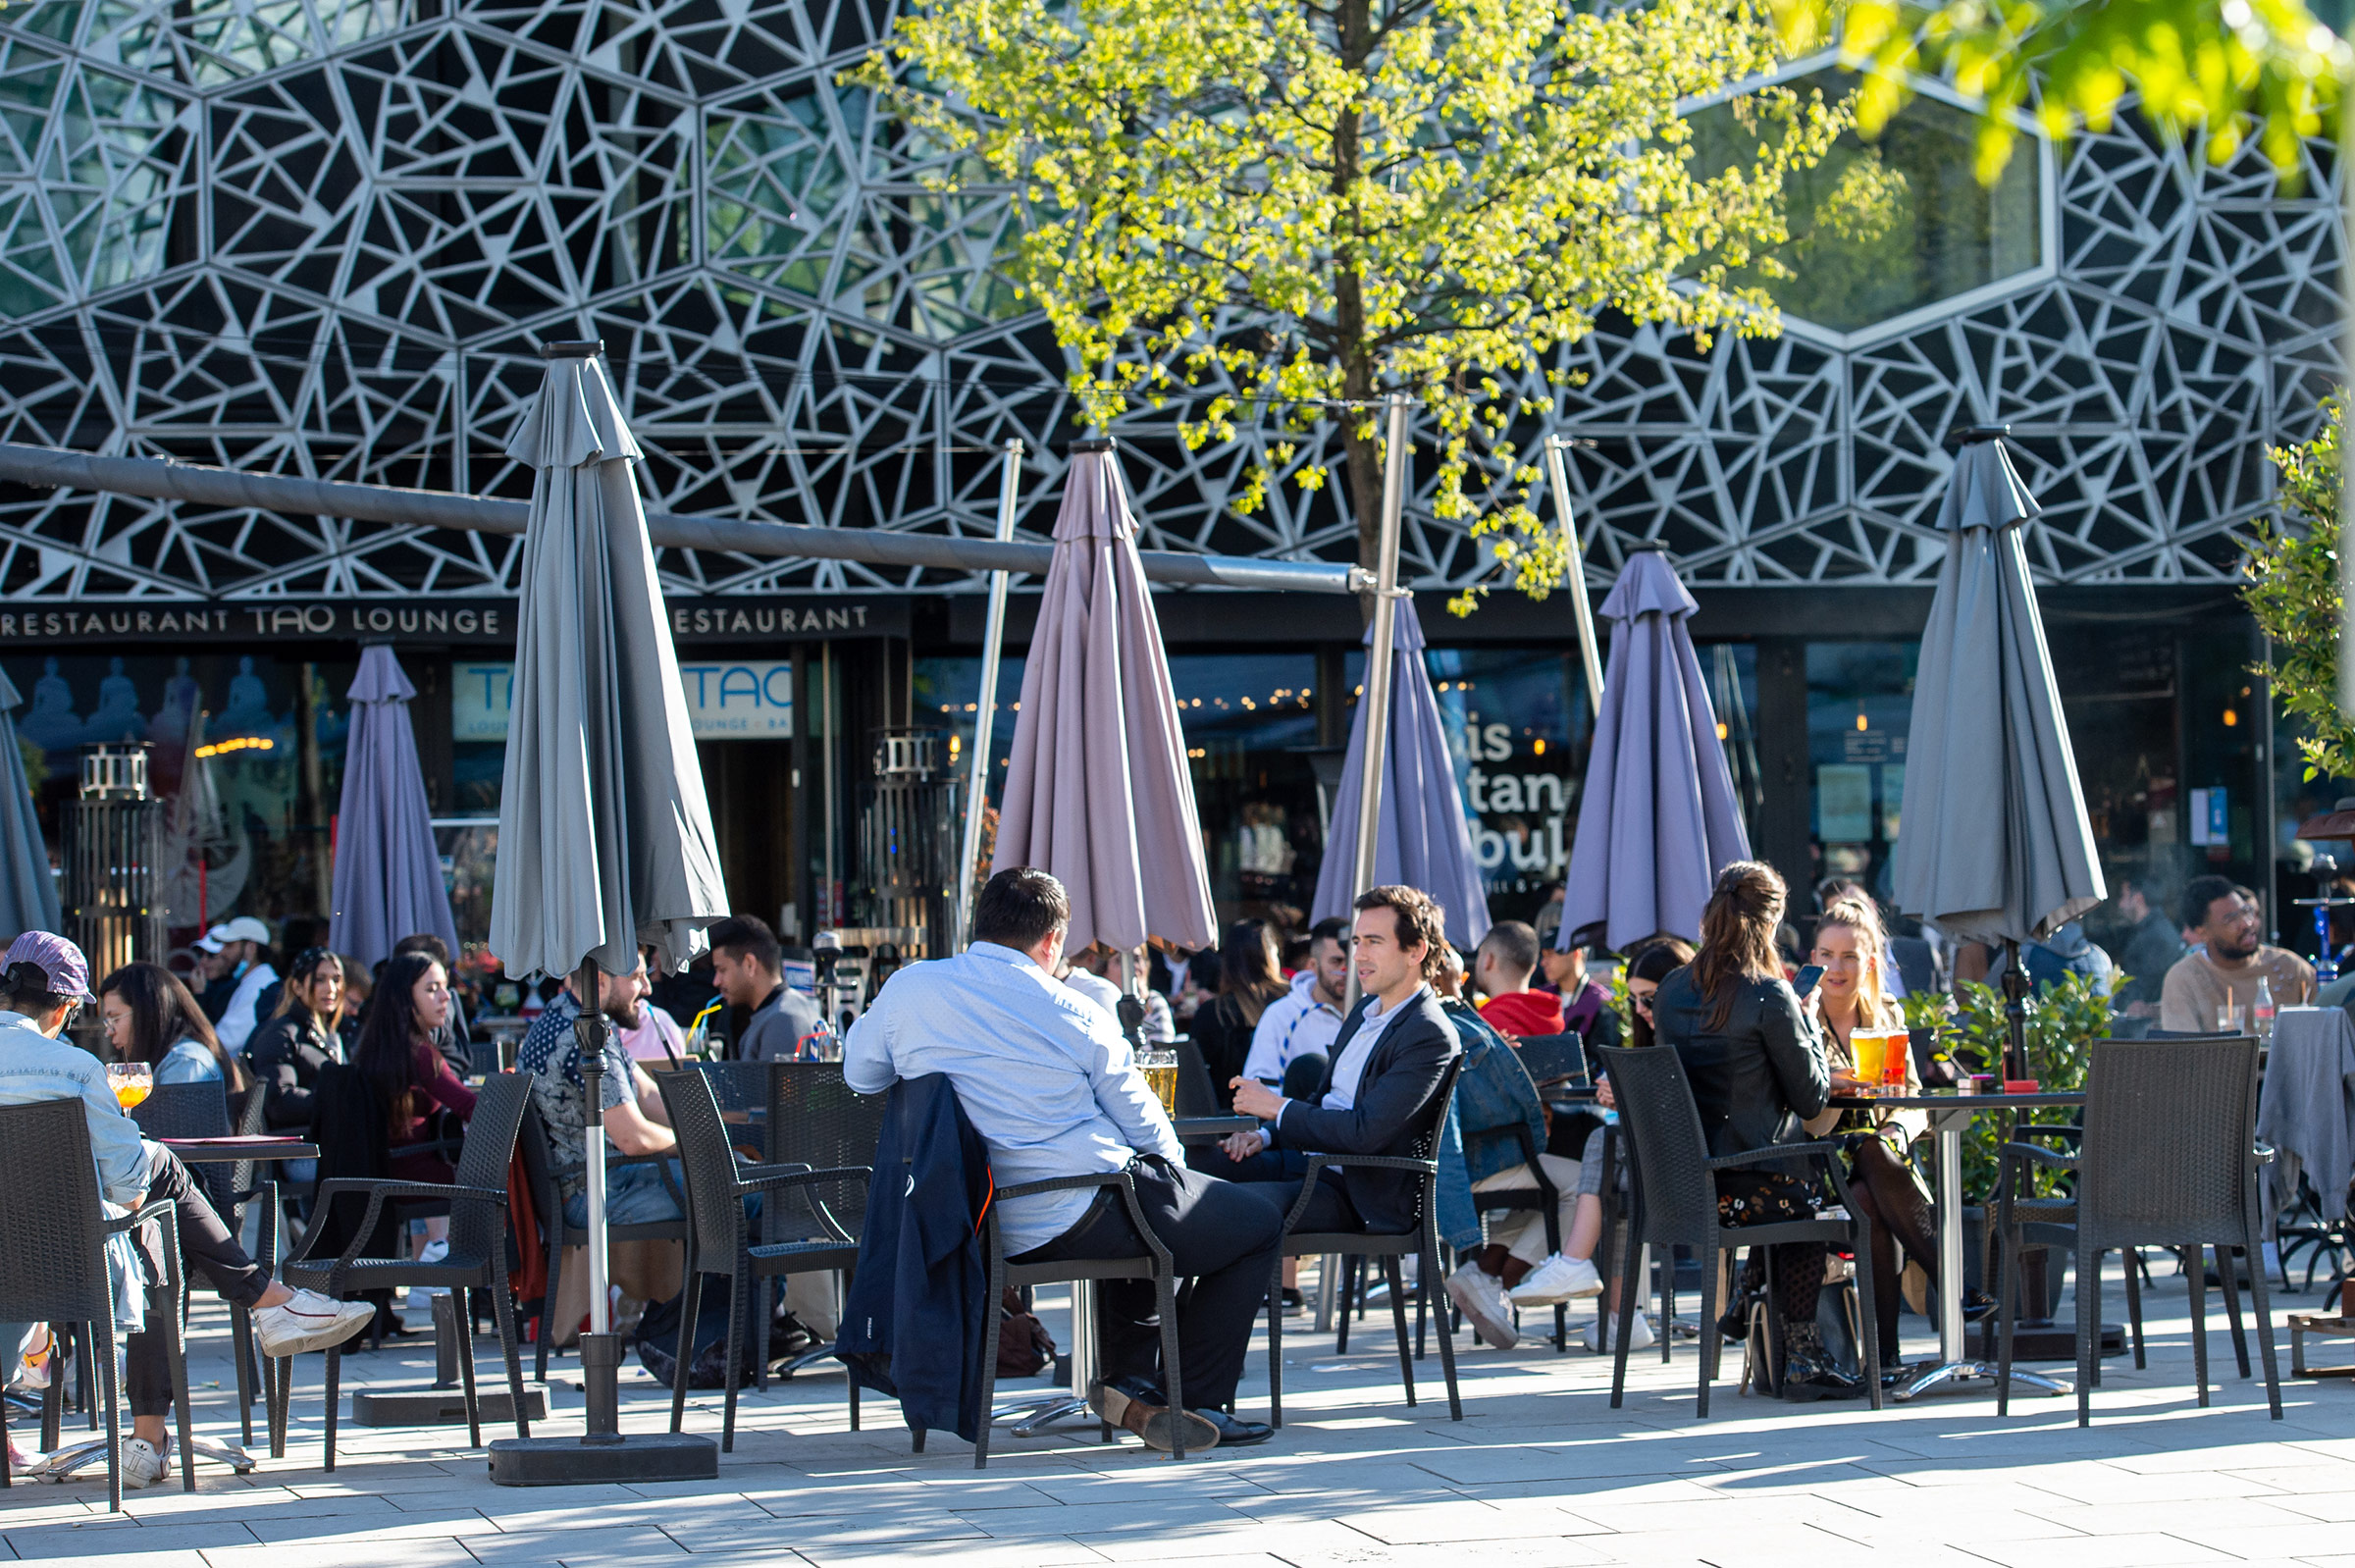 People sit outside at a restaurant in Lausanne, Switzerland, on May 3.